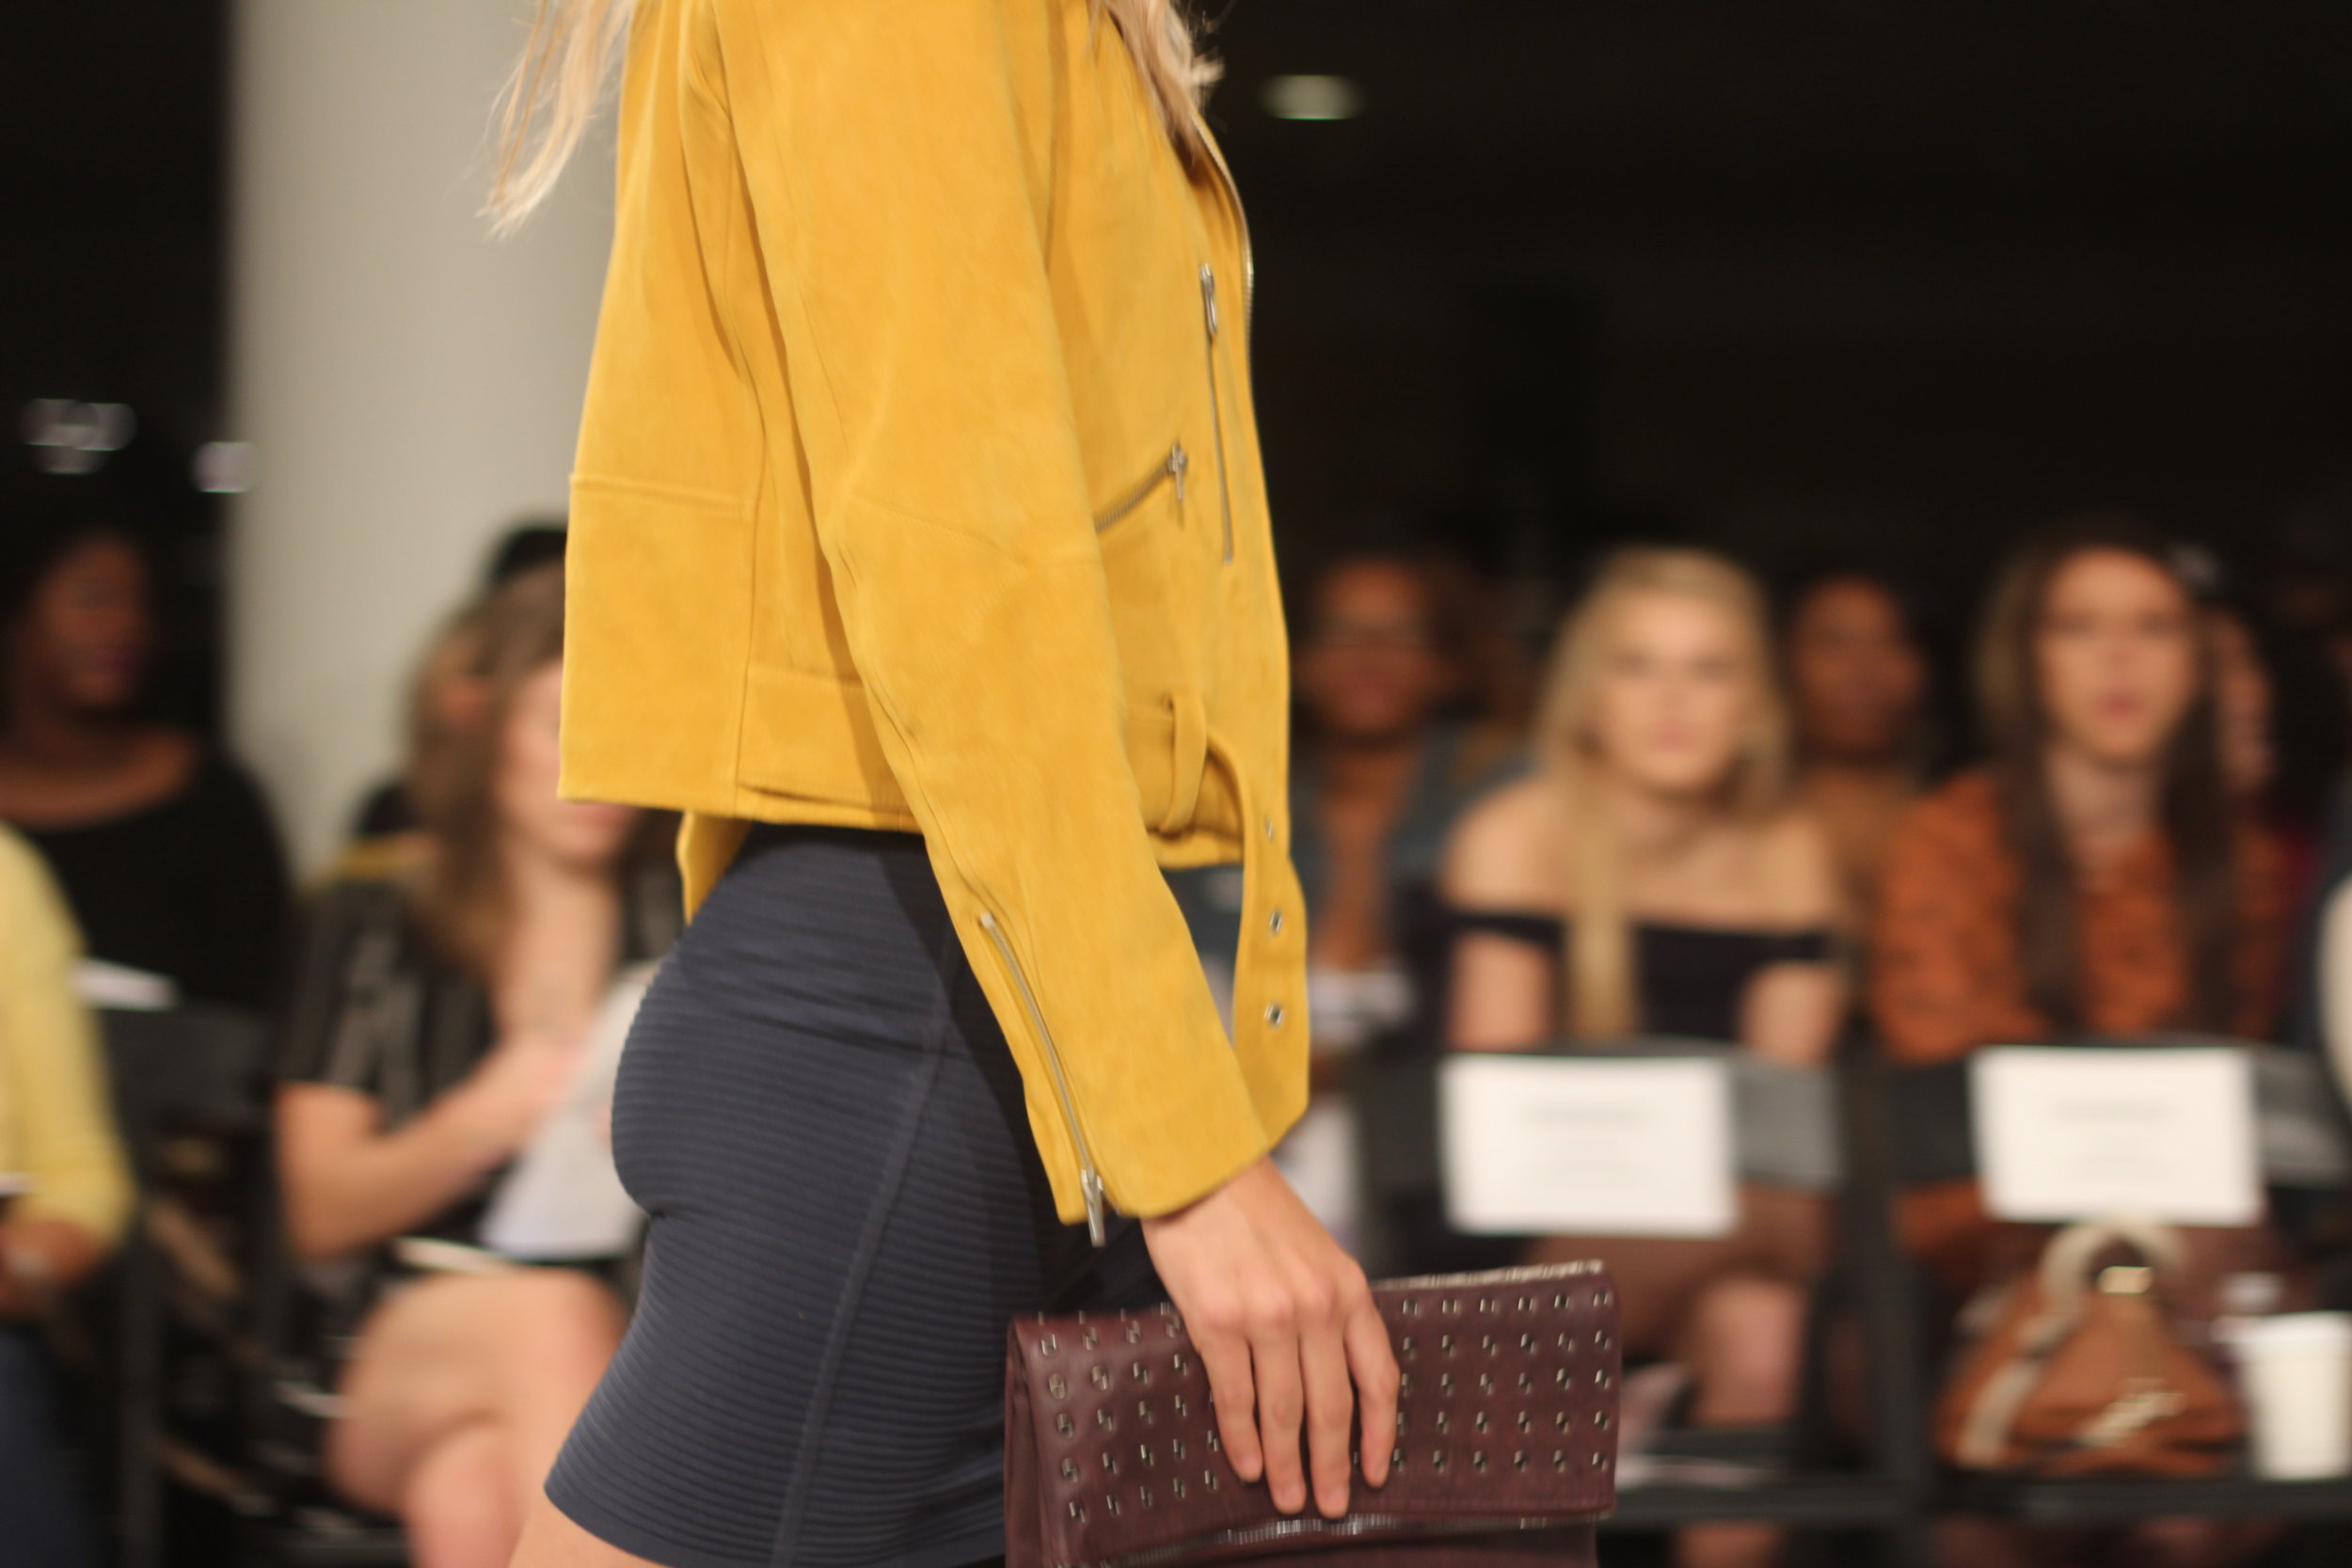 A pop of mustard in a suede moto jacket at the Nordstrom Beauty Trend Show.